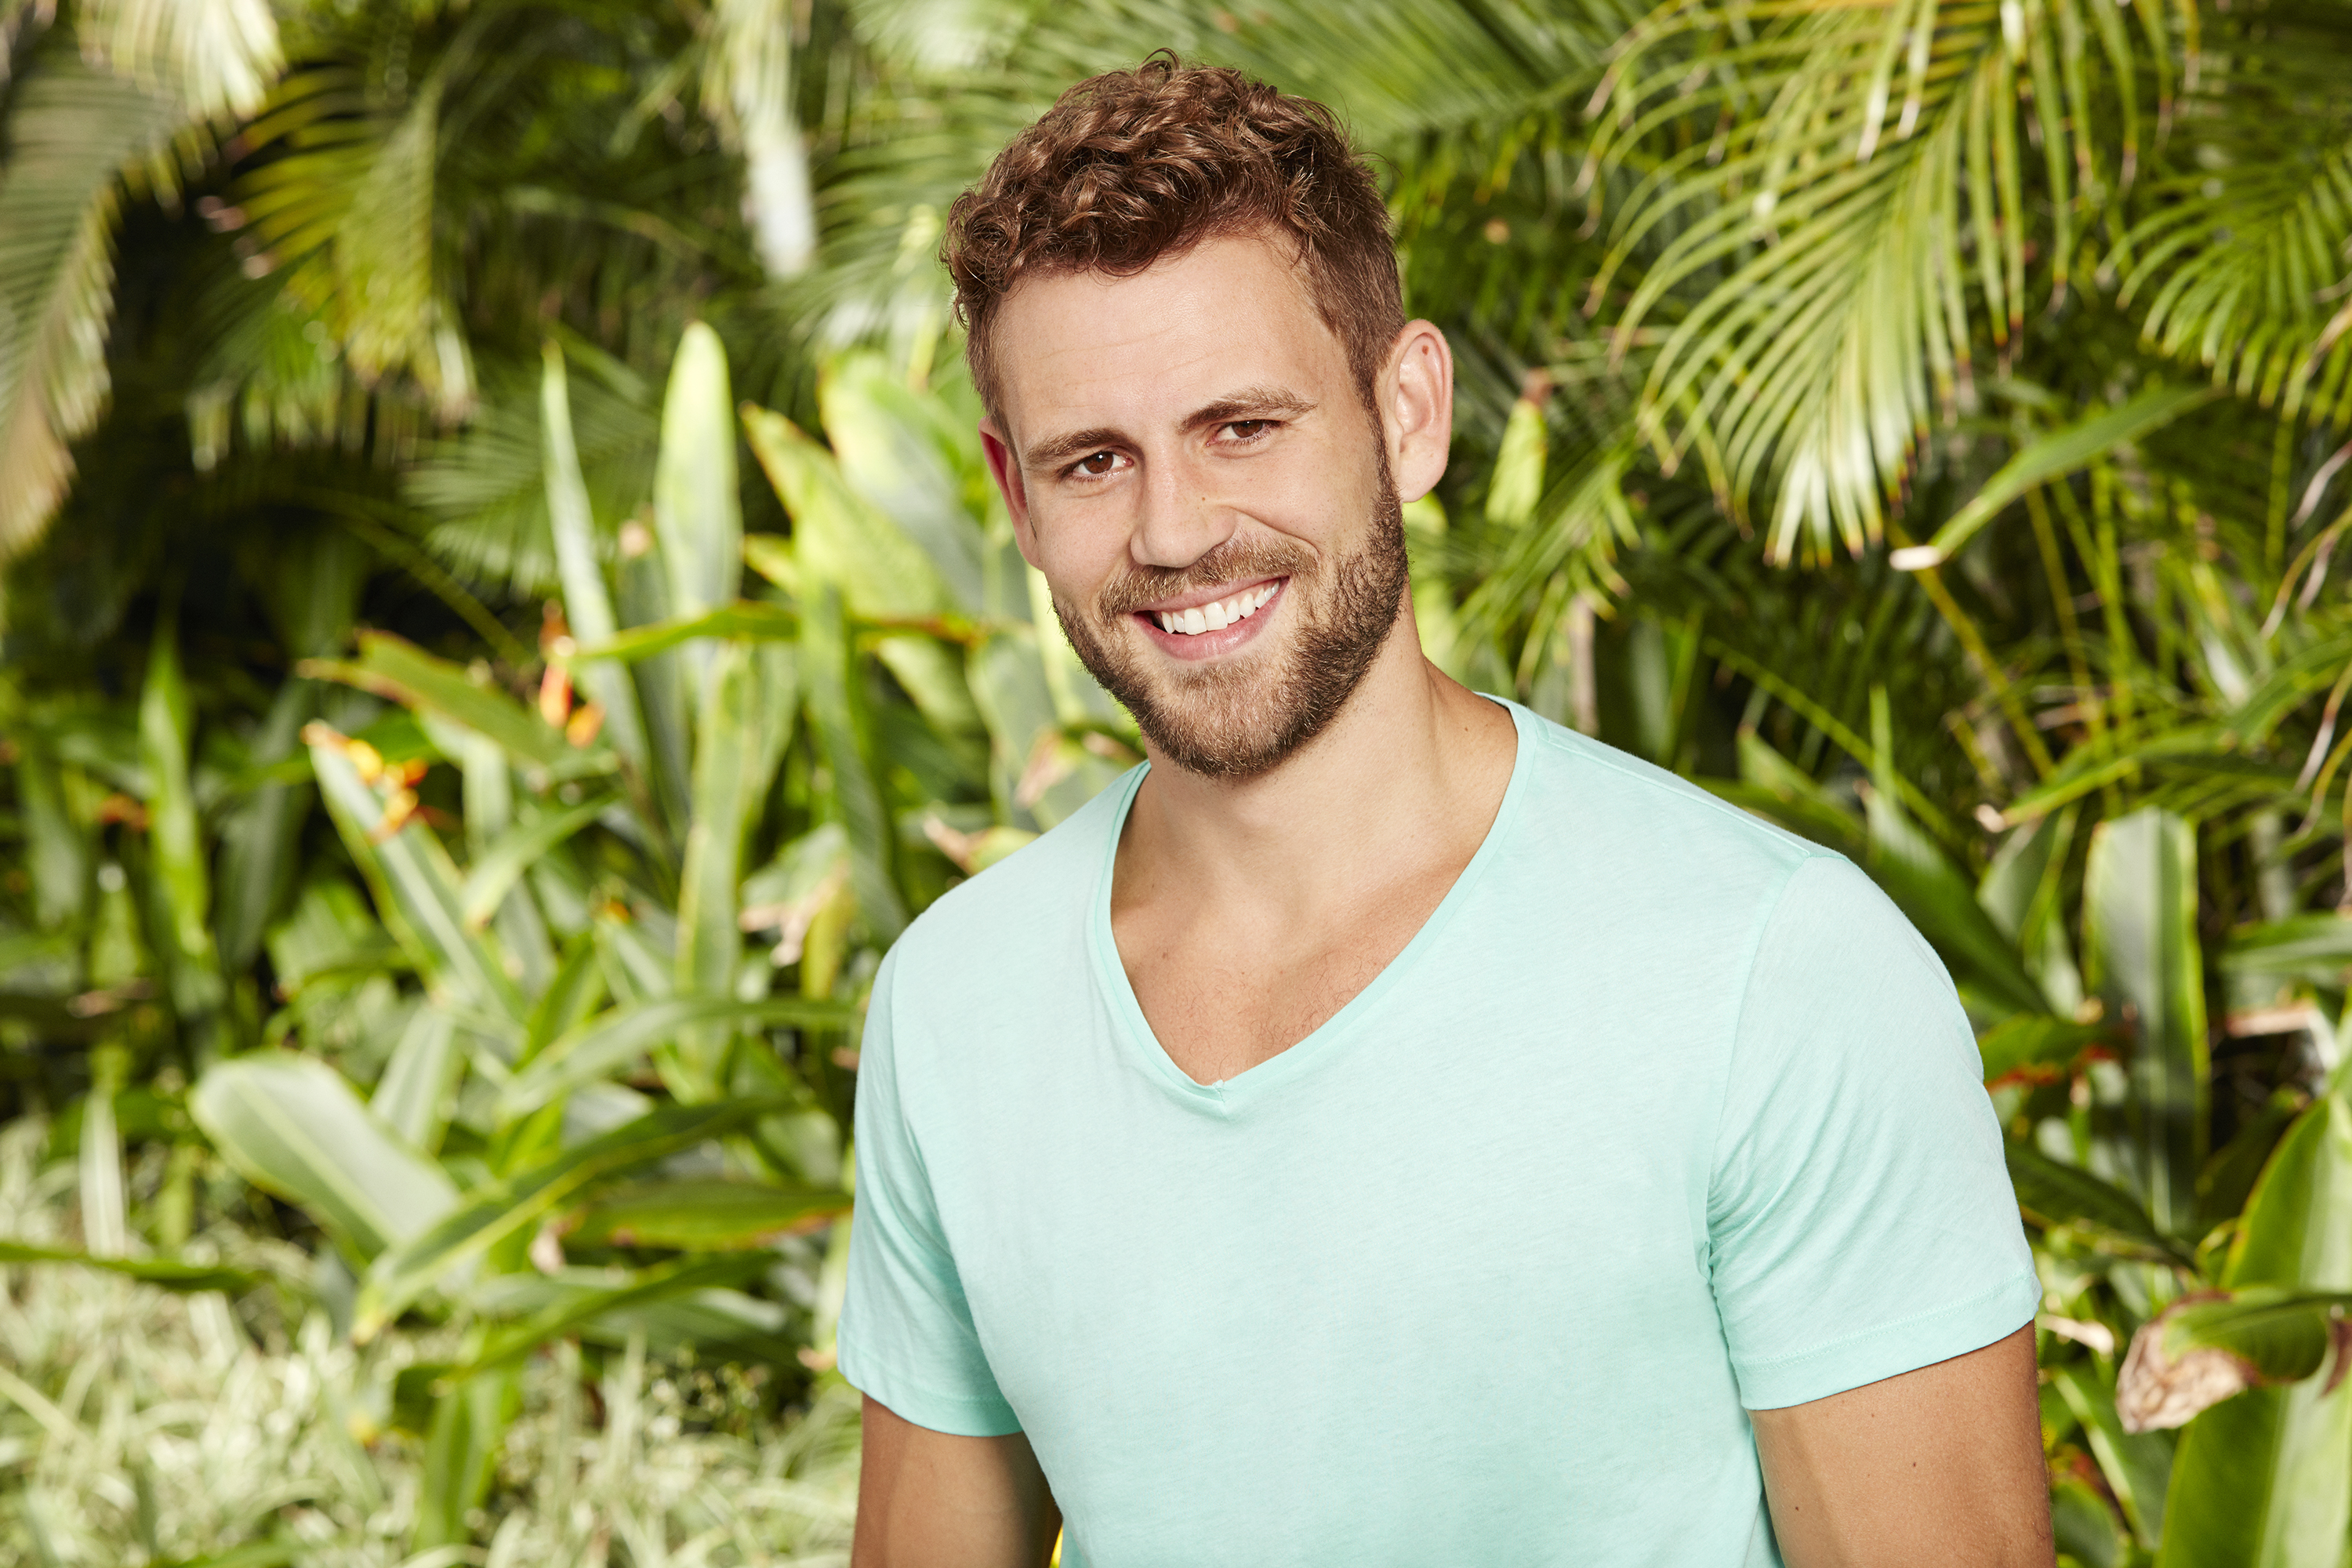 Nick Viall Is The Next Bachelor For 2017